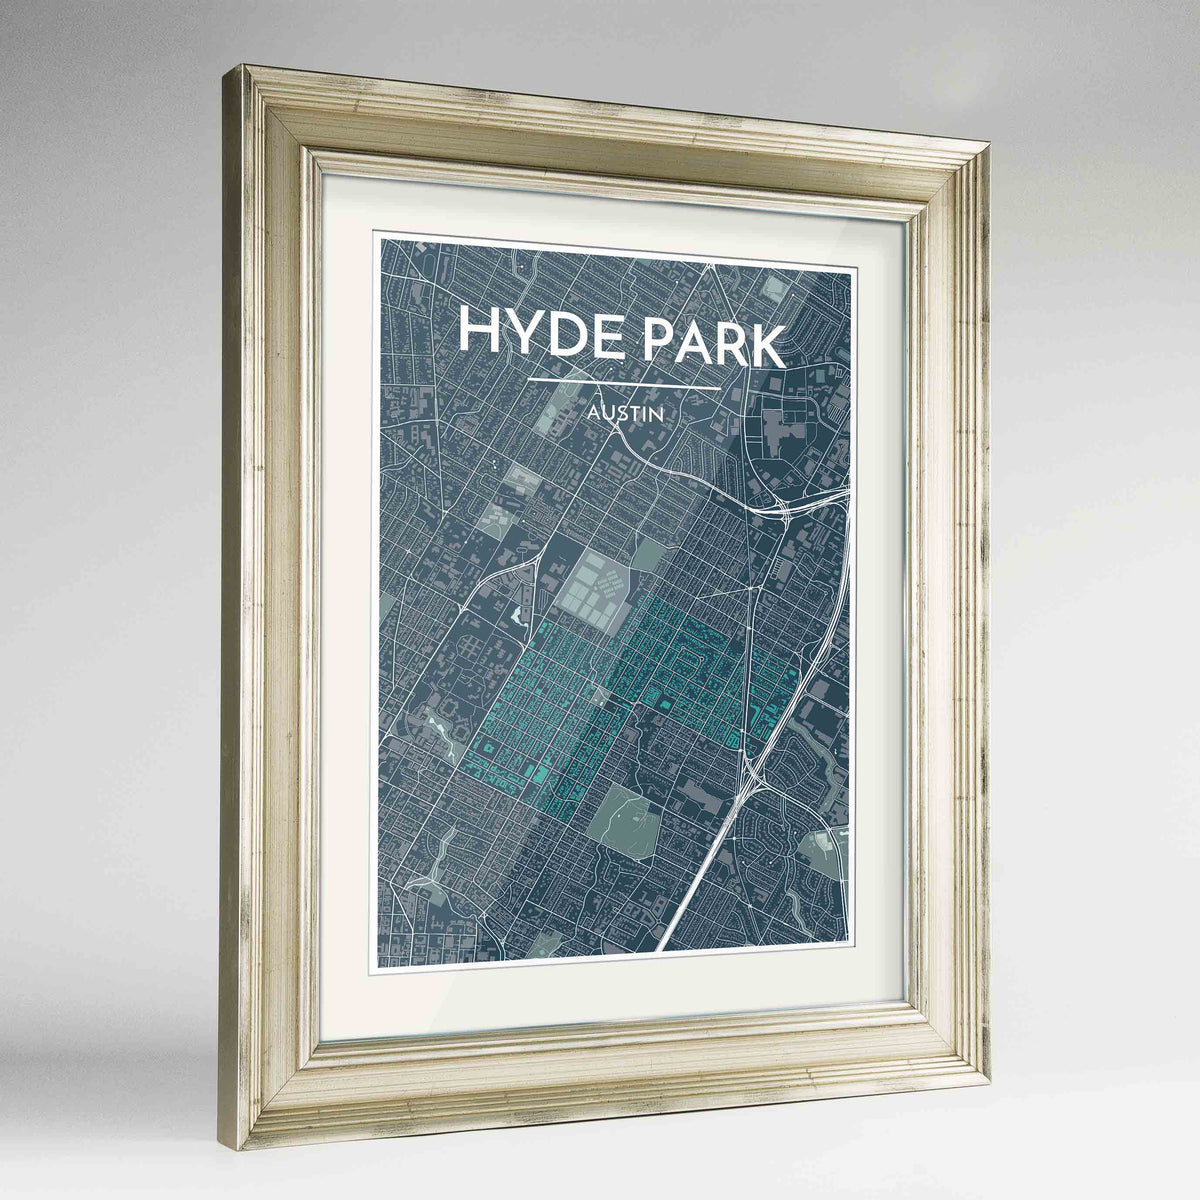 "Framed Hyde Park Neighbourhood of Austin Map Art Print 24x36"" Champagne frame Point Two Design Group"